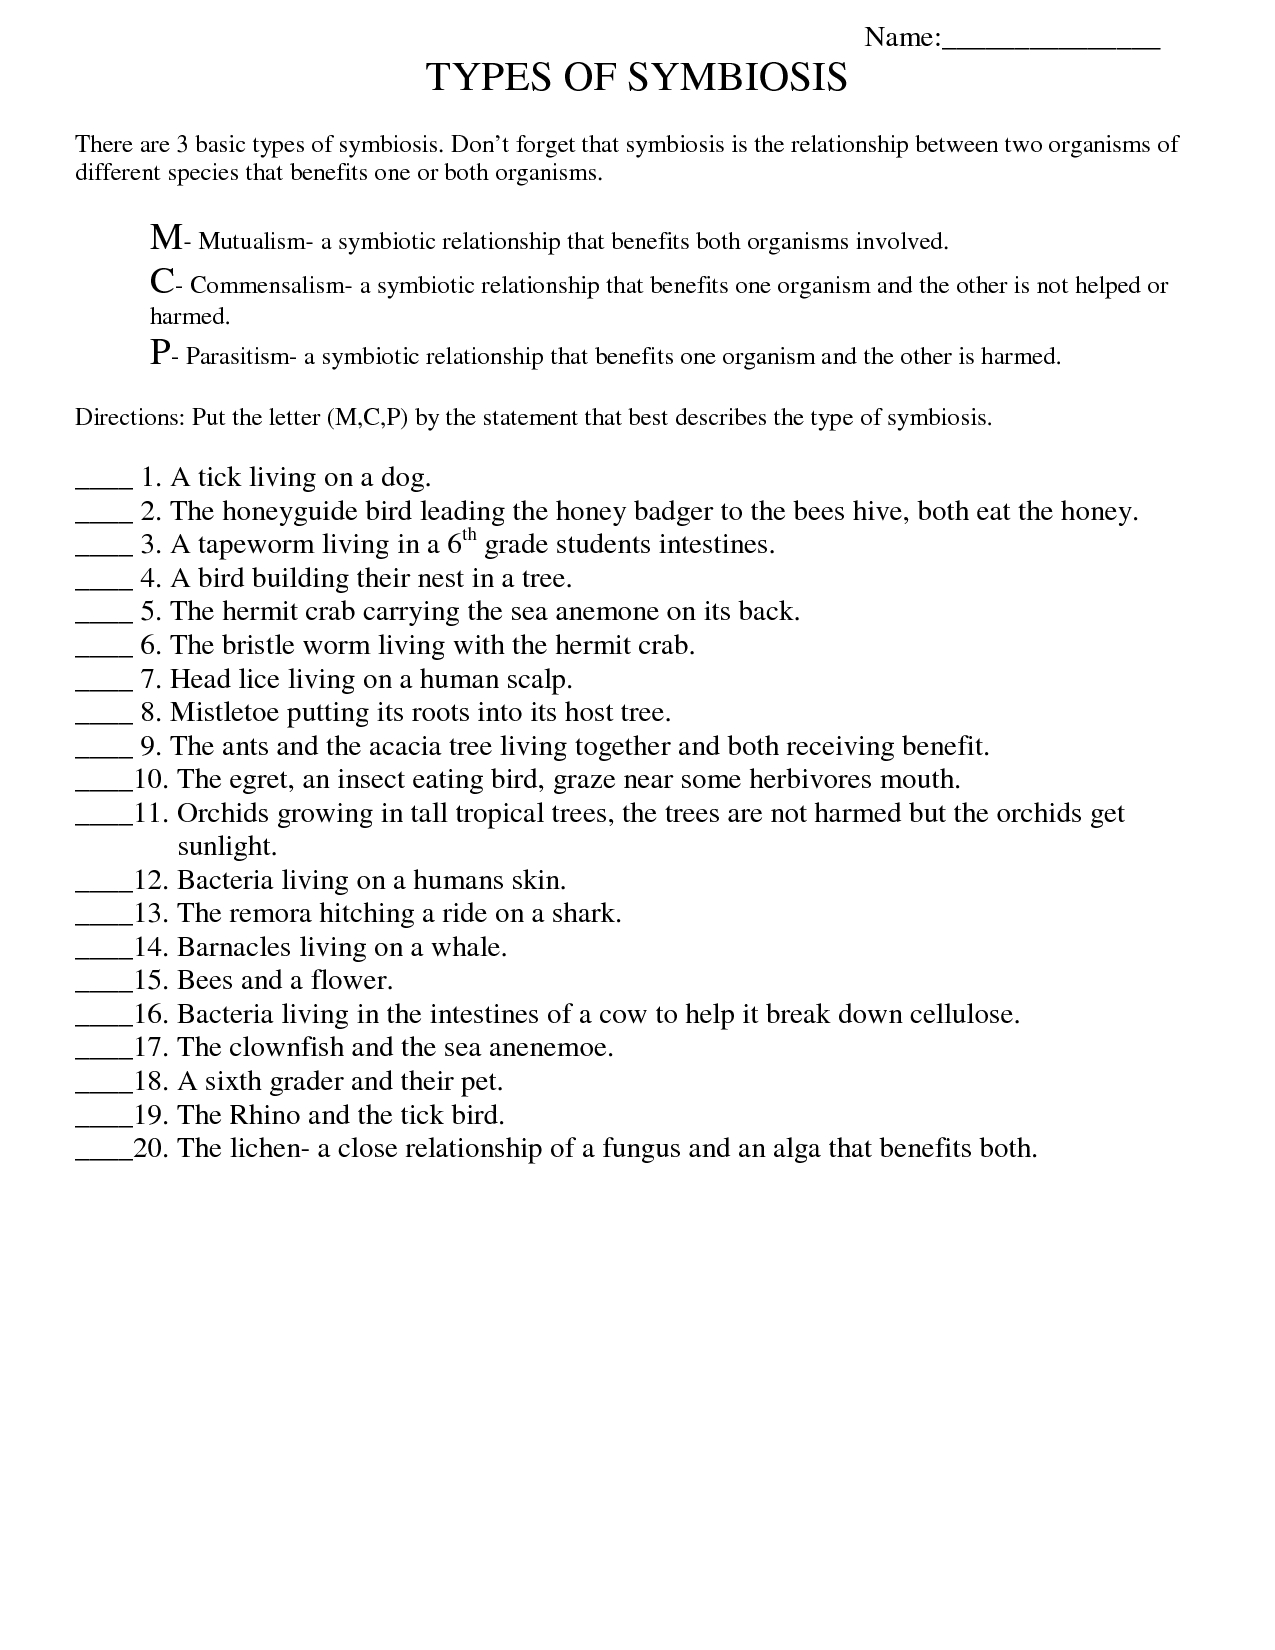 Symbiosis Worksheet: Free Printable Worksheets On High School Bio | Free Printable High School Science Worksheets